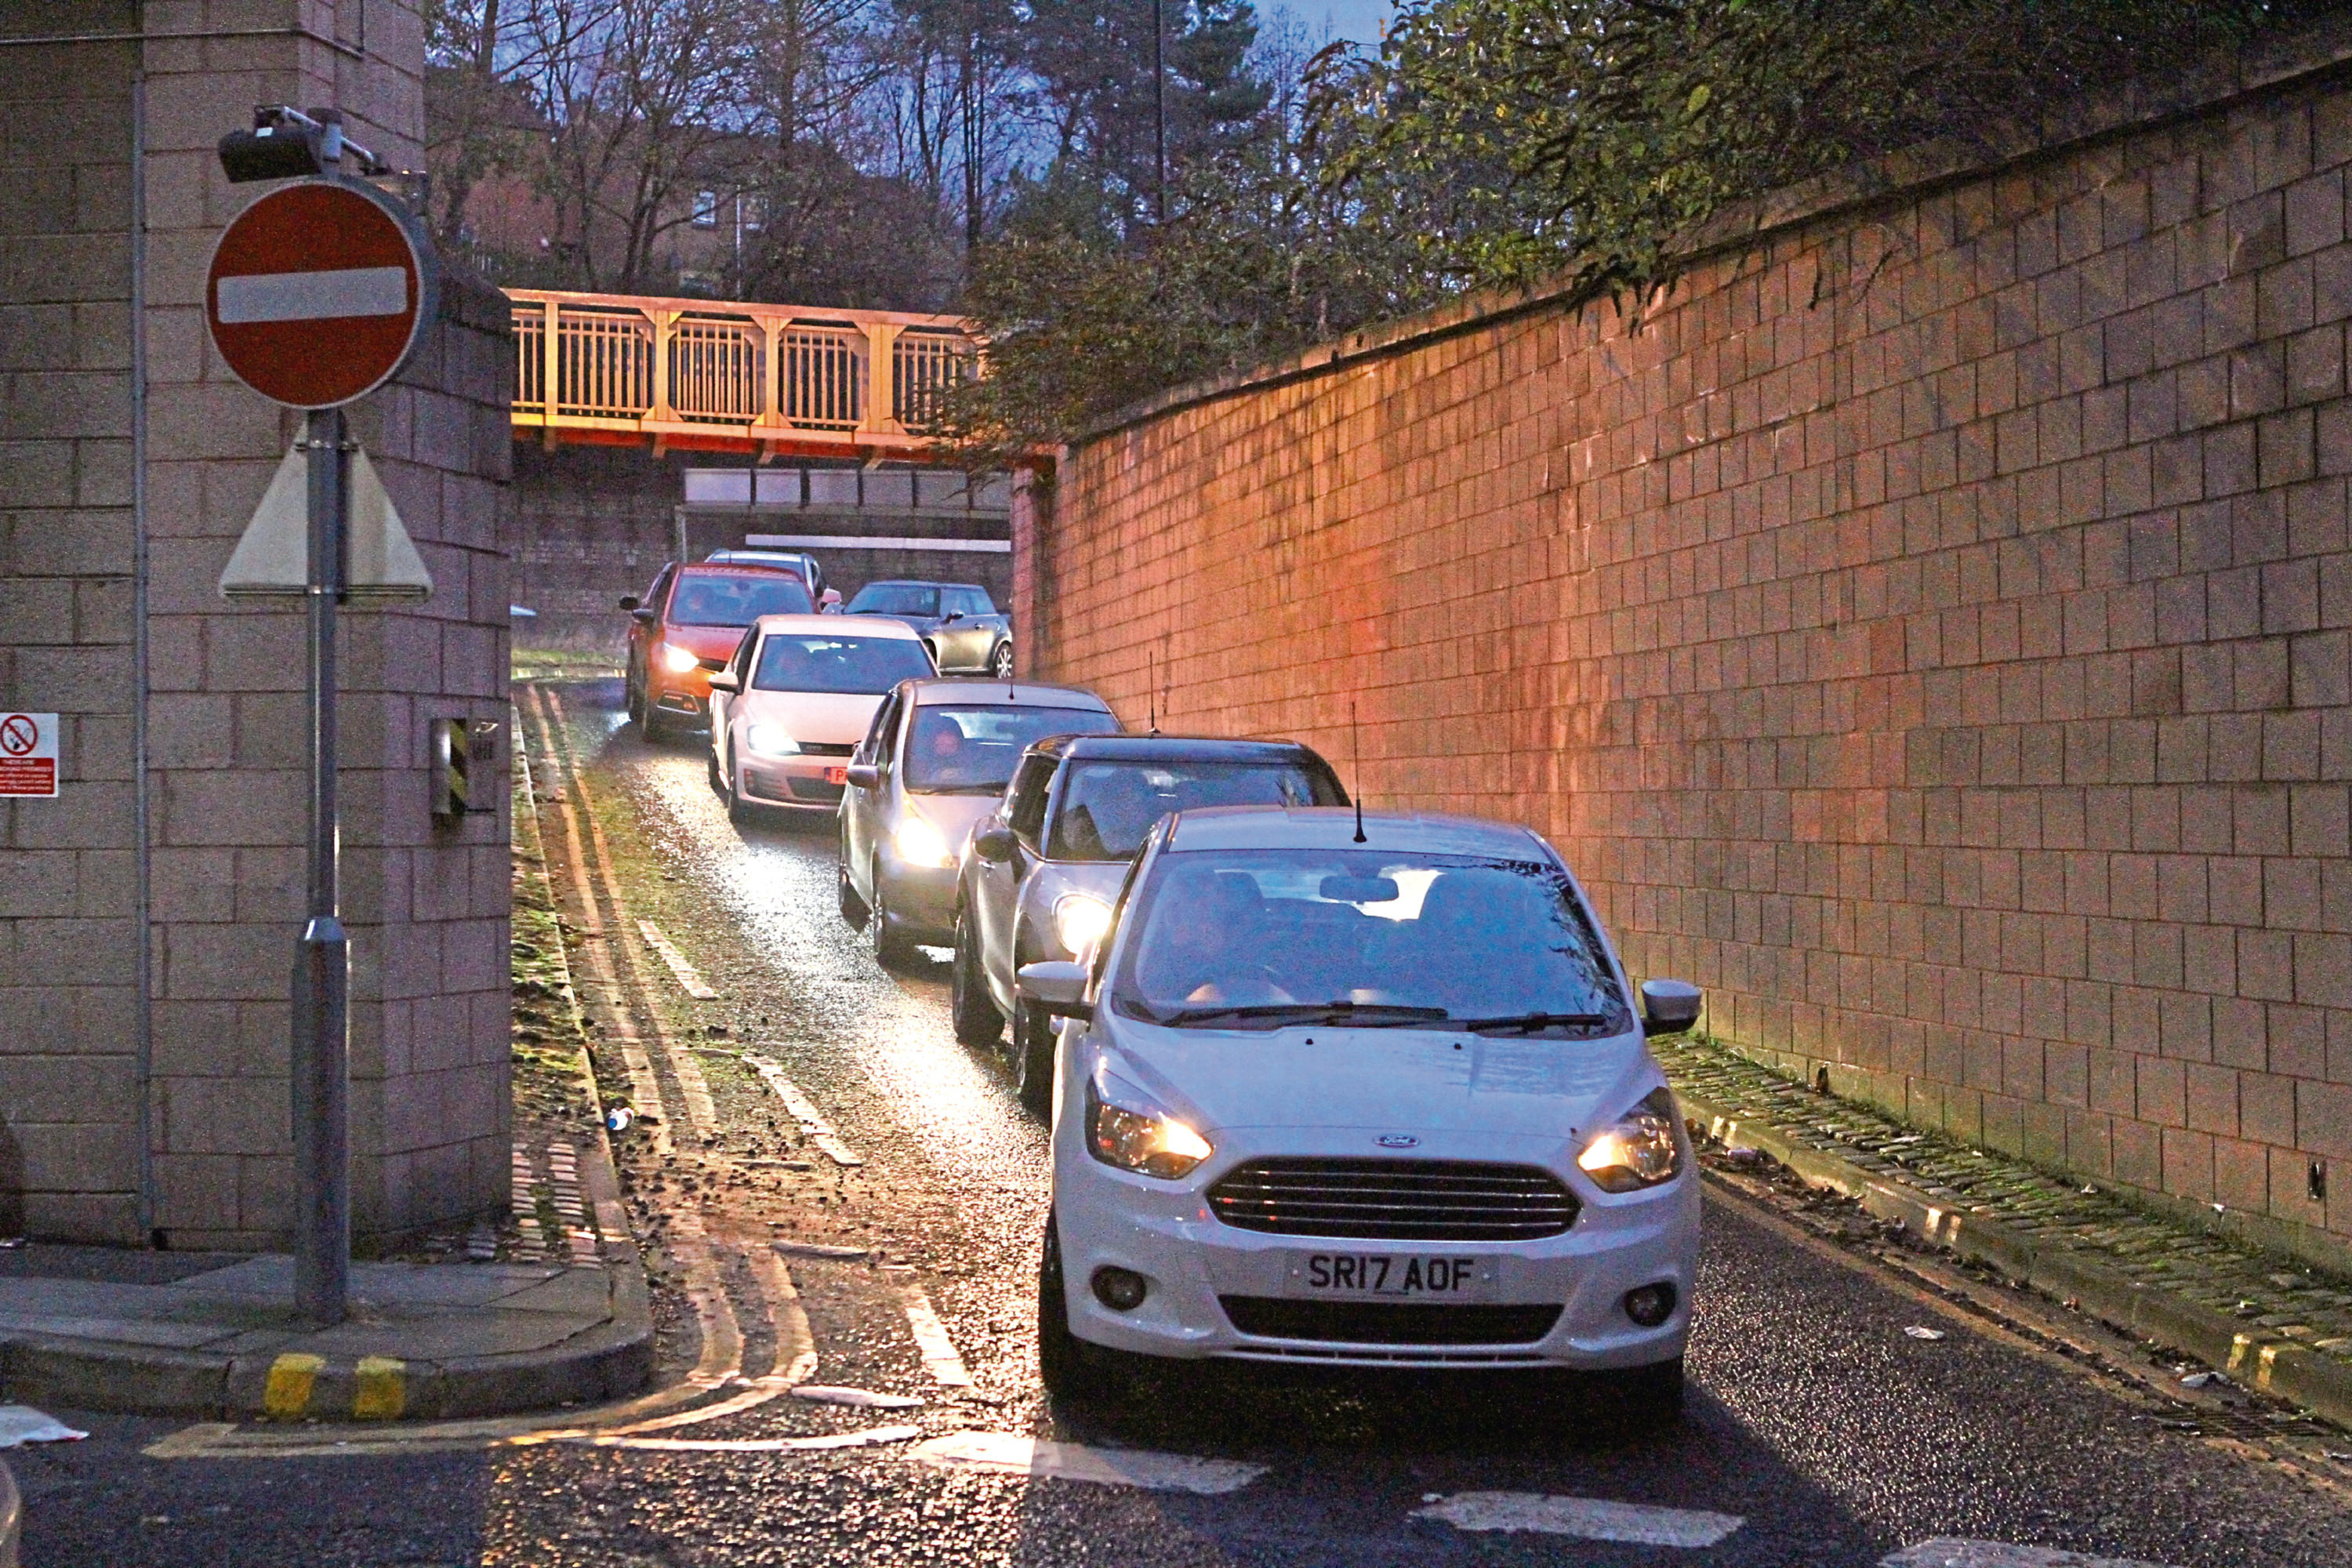 Vehicles queued off after the closure of the car park at the Wellgate Shopping Centre